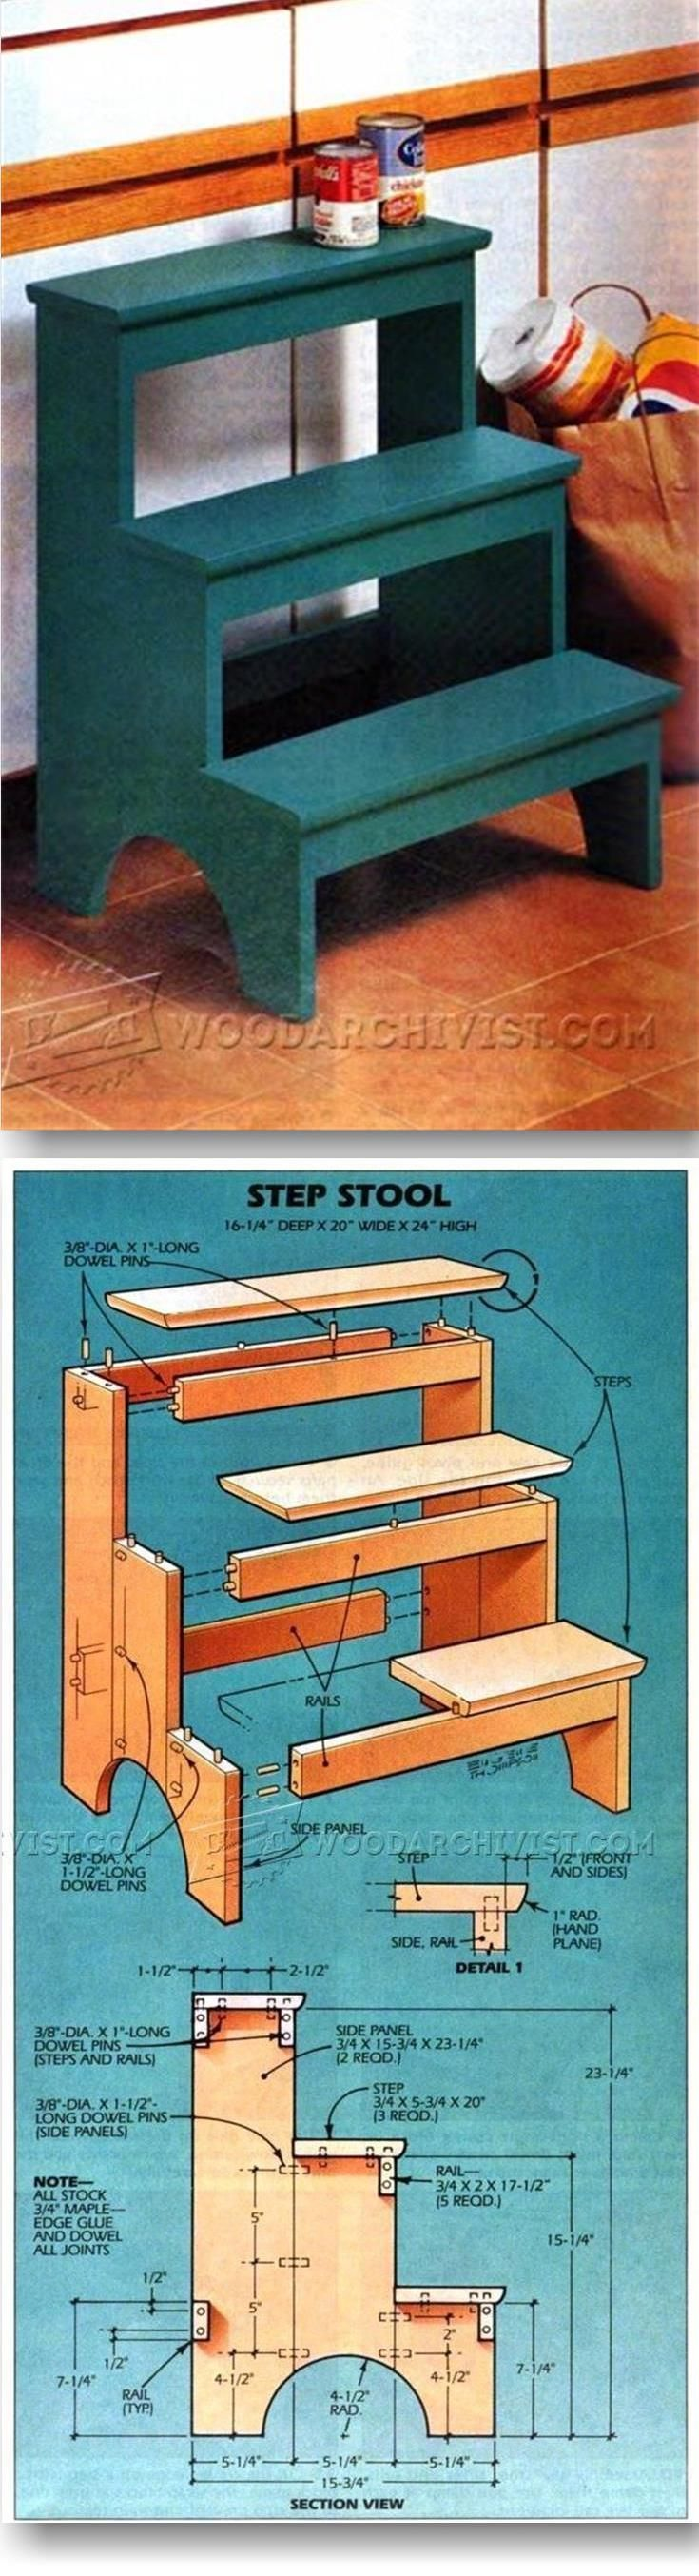 Kitchen Step Stool Plans - Furniture Plans and Projects ...